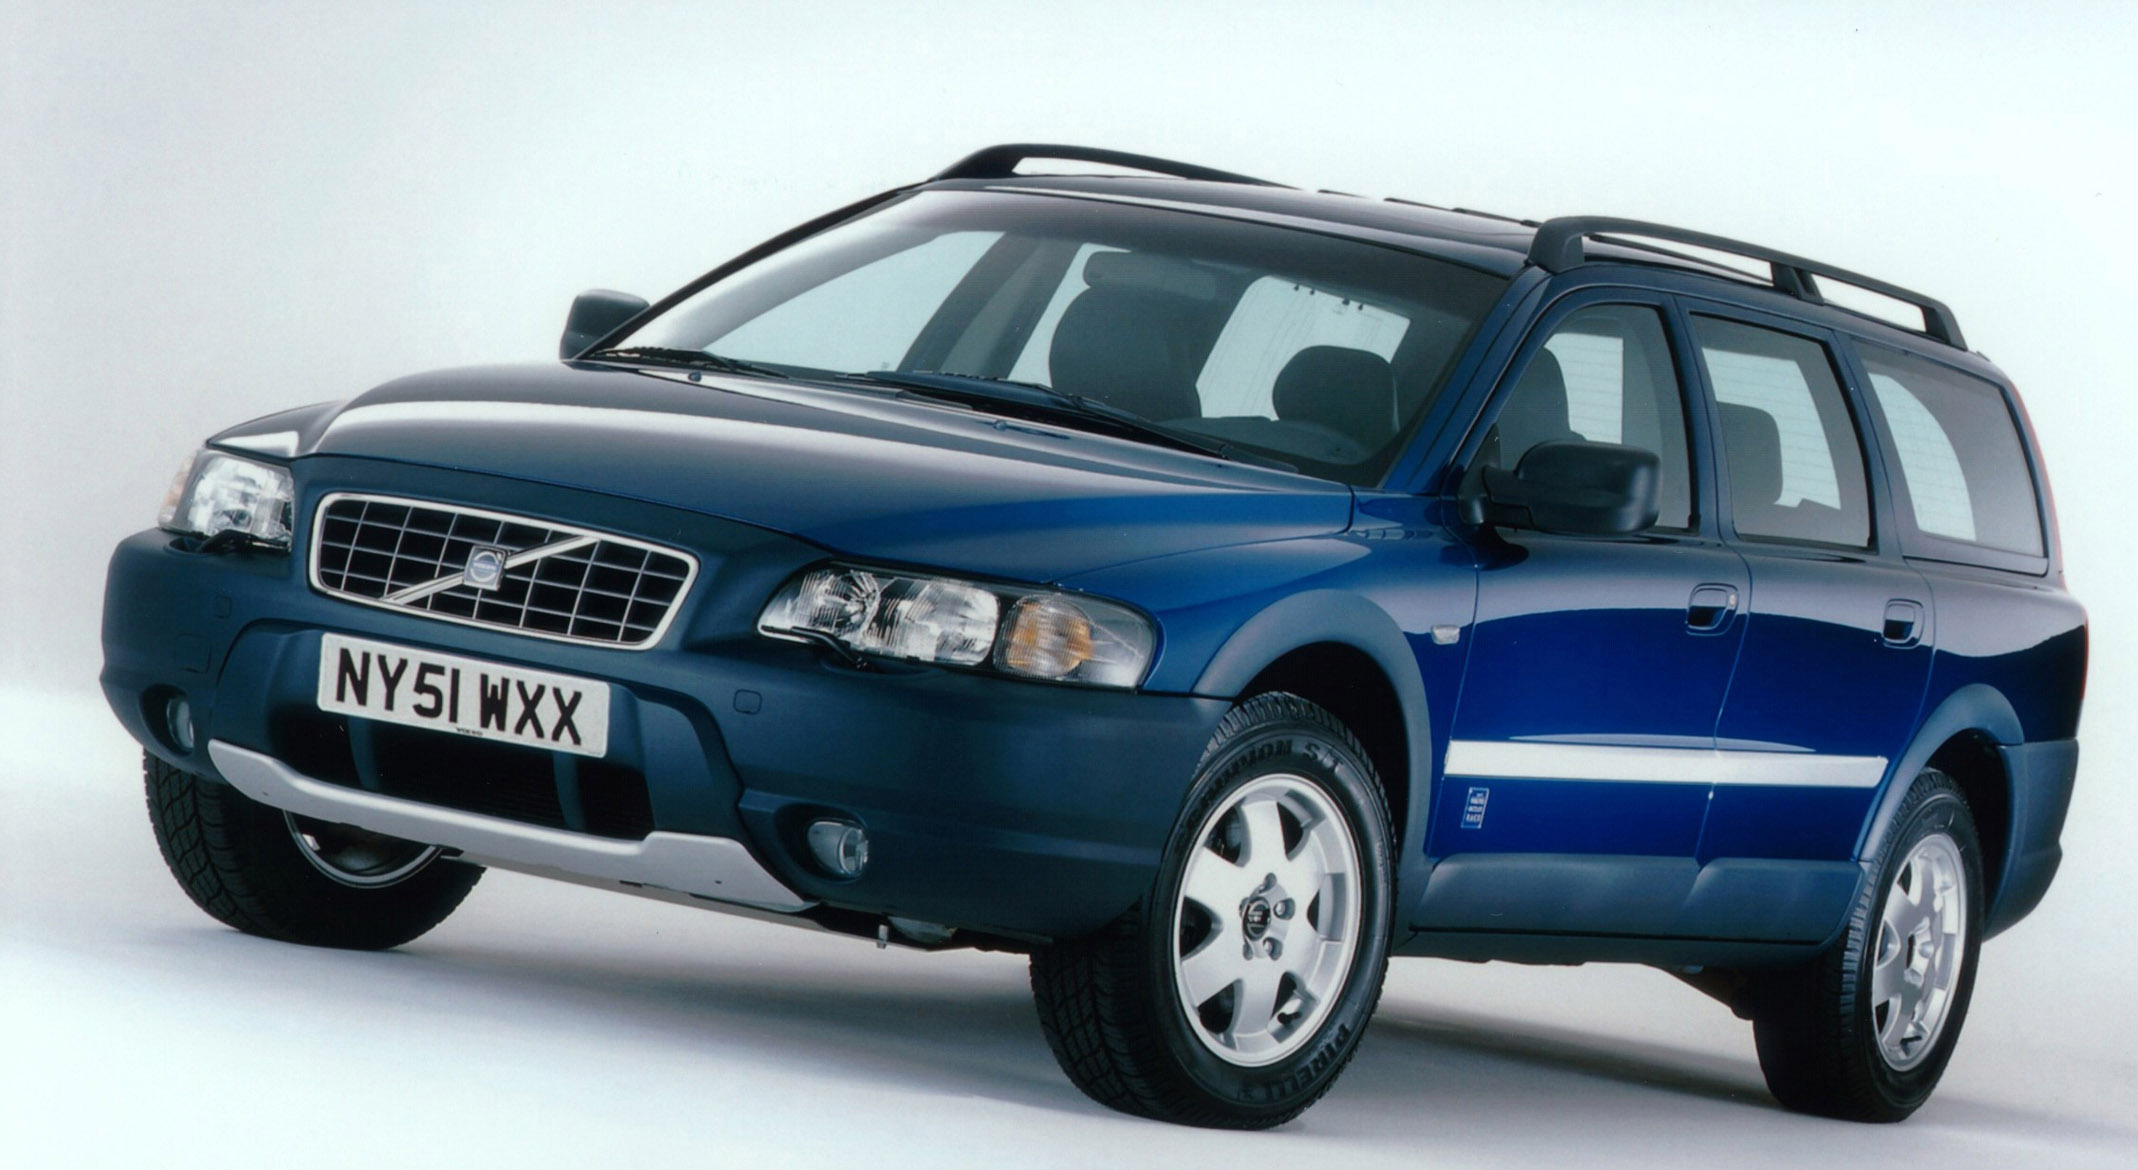 Used 2001 Volvo V70 Consumer Reviews - 157 Car Reviews ...